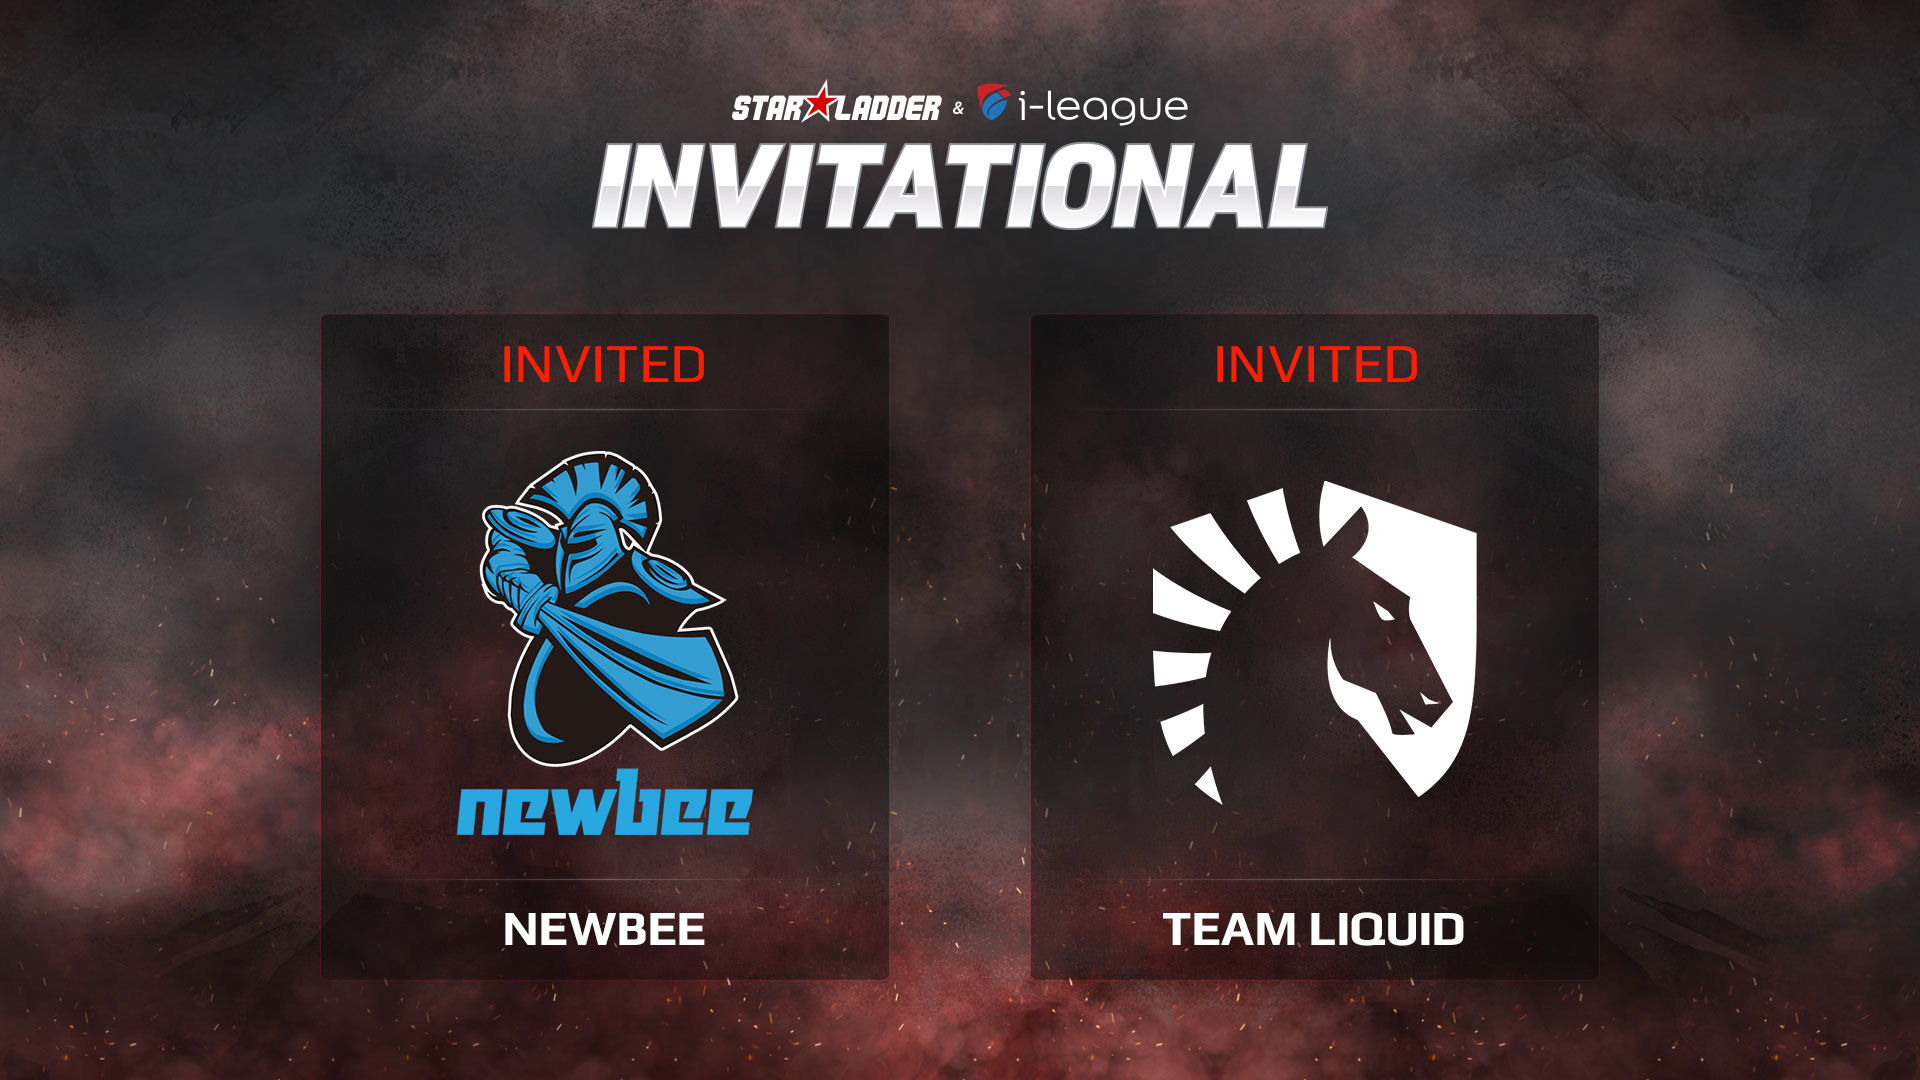 Team Liquid and Newbee received direct invites to Invitational